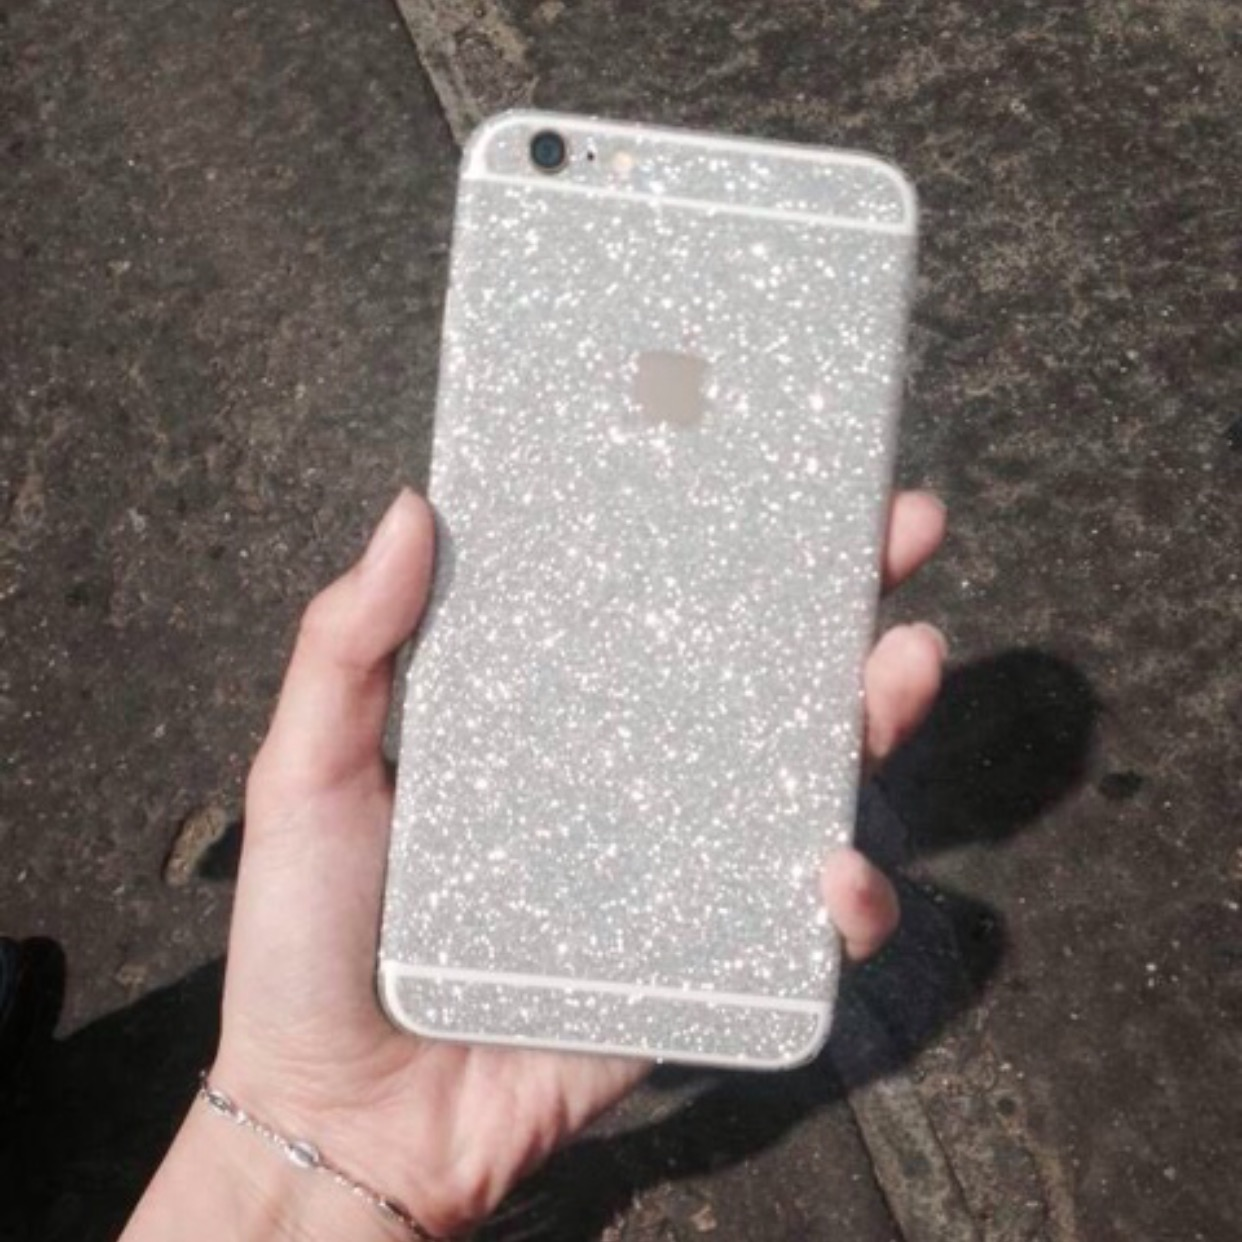 Silver Glitter Sticker Skin iPhone 6 iPhone 6 Plus iPhone 5 5s on ... 99f41aa744